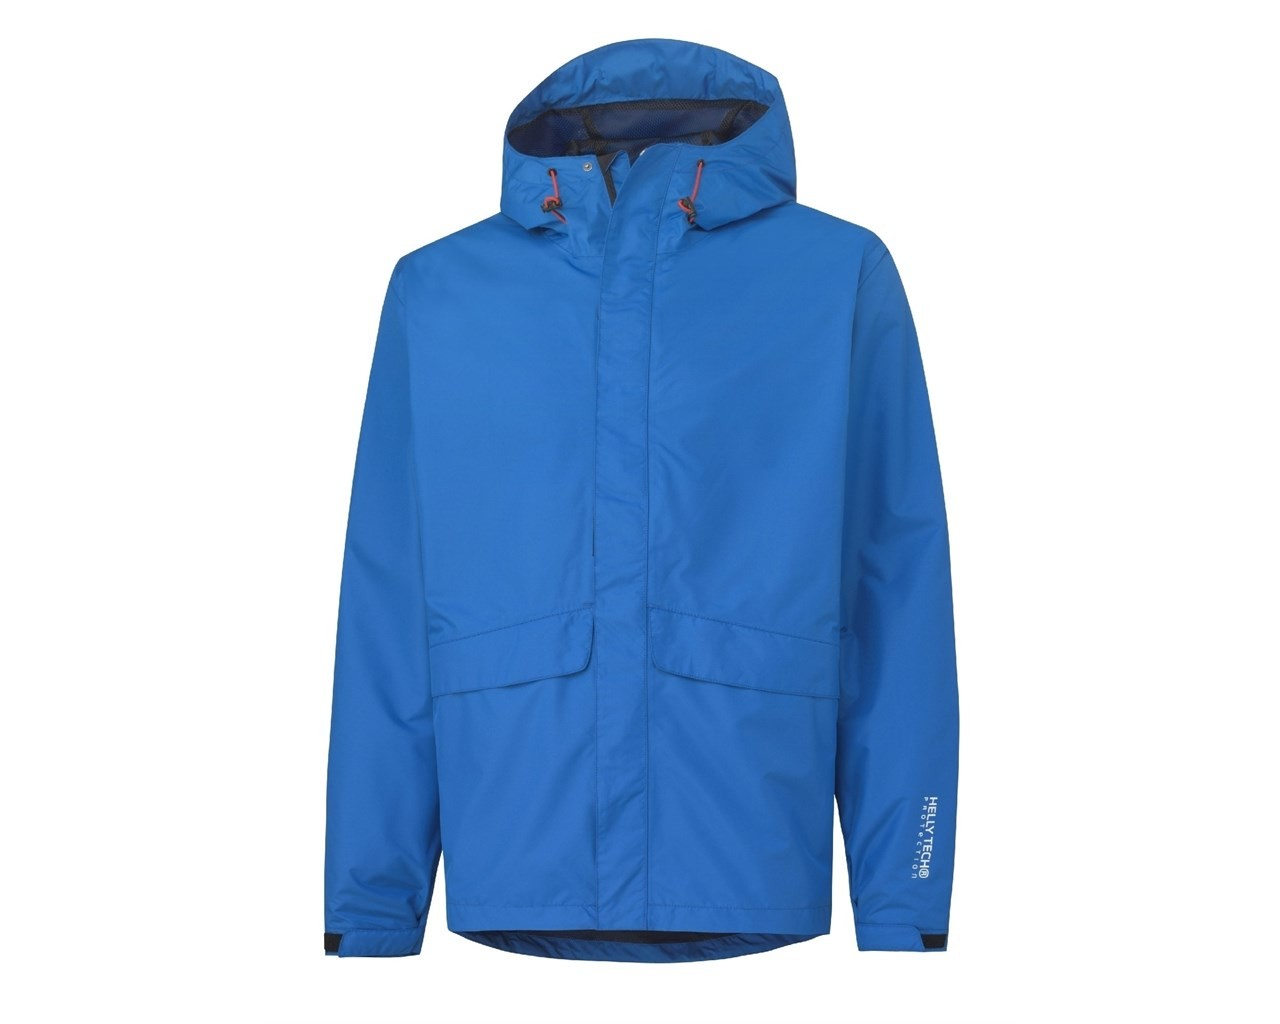 Helly Hansen waterloo jacket